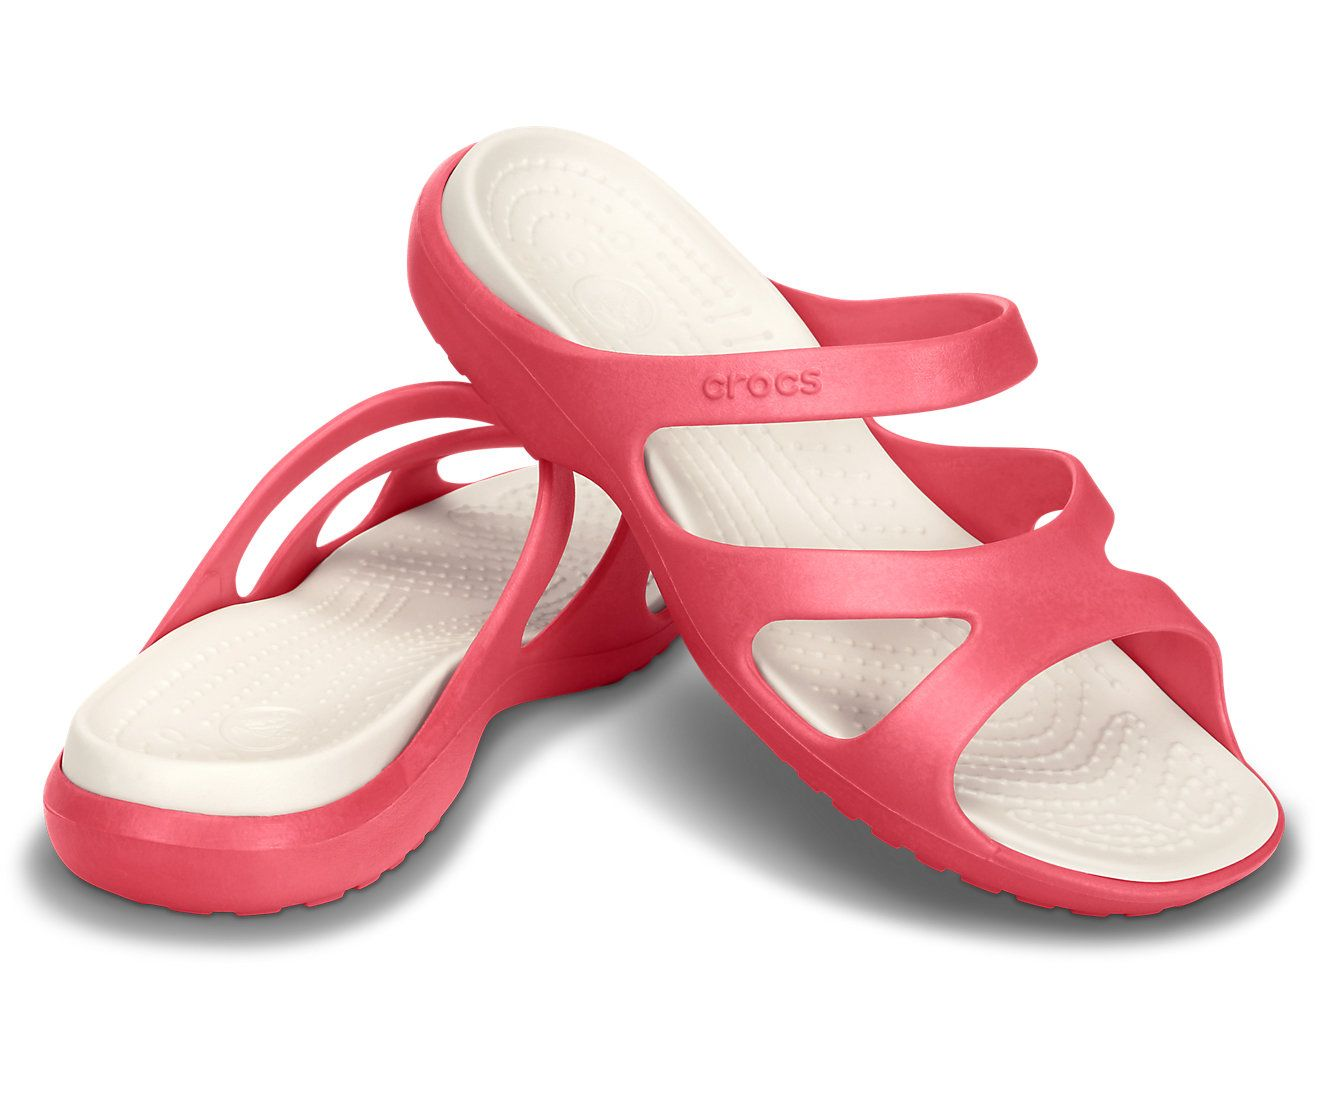 Women's sandals good for plantar fasciitis uk - Crocs Meleen Comfortable Women S Sandal Crocs Official Site Awesome House Shoes Or